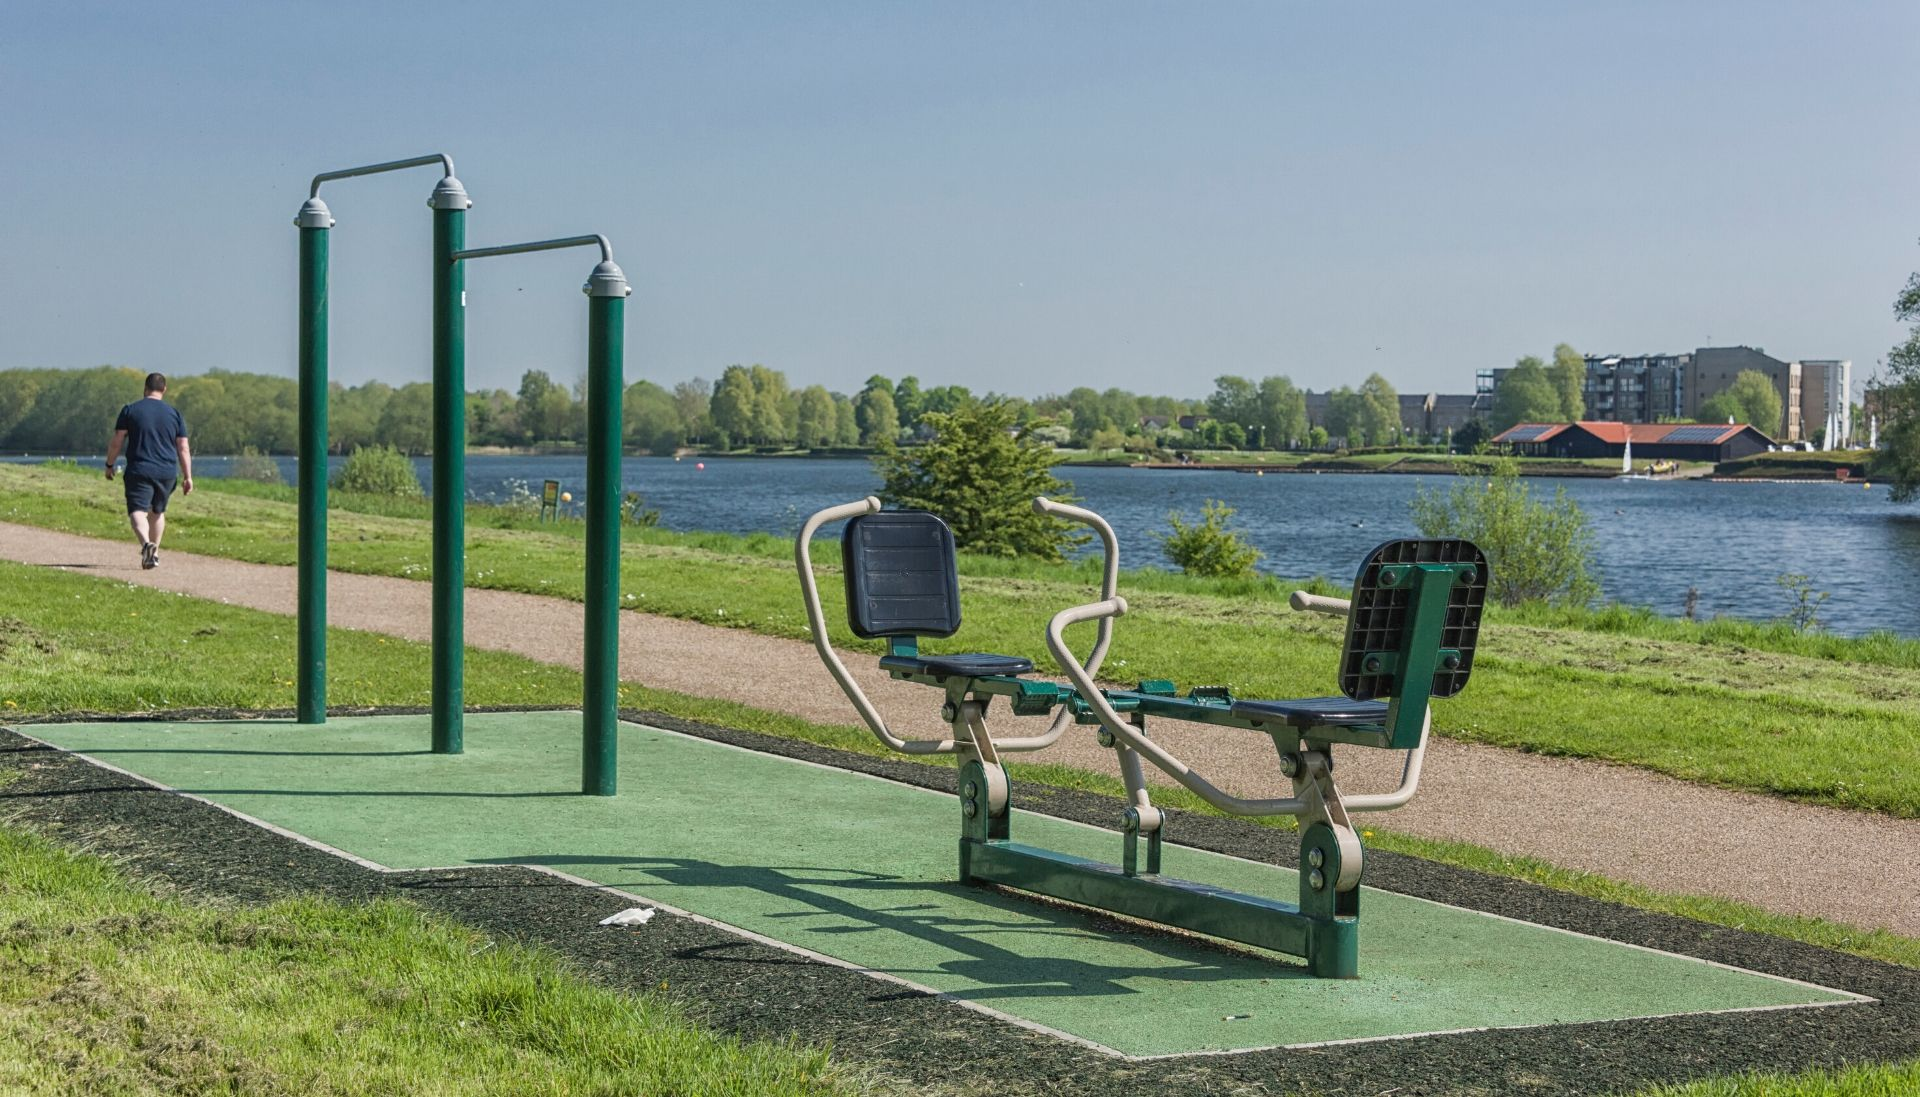 D81_4628Caldecotte Lake Chin Up Bars and Double Rower.jpg